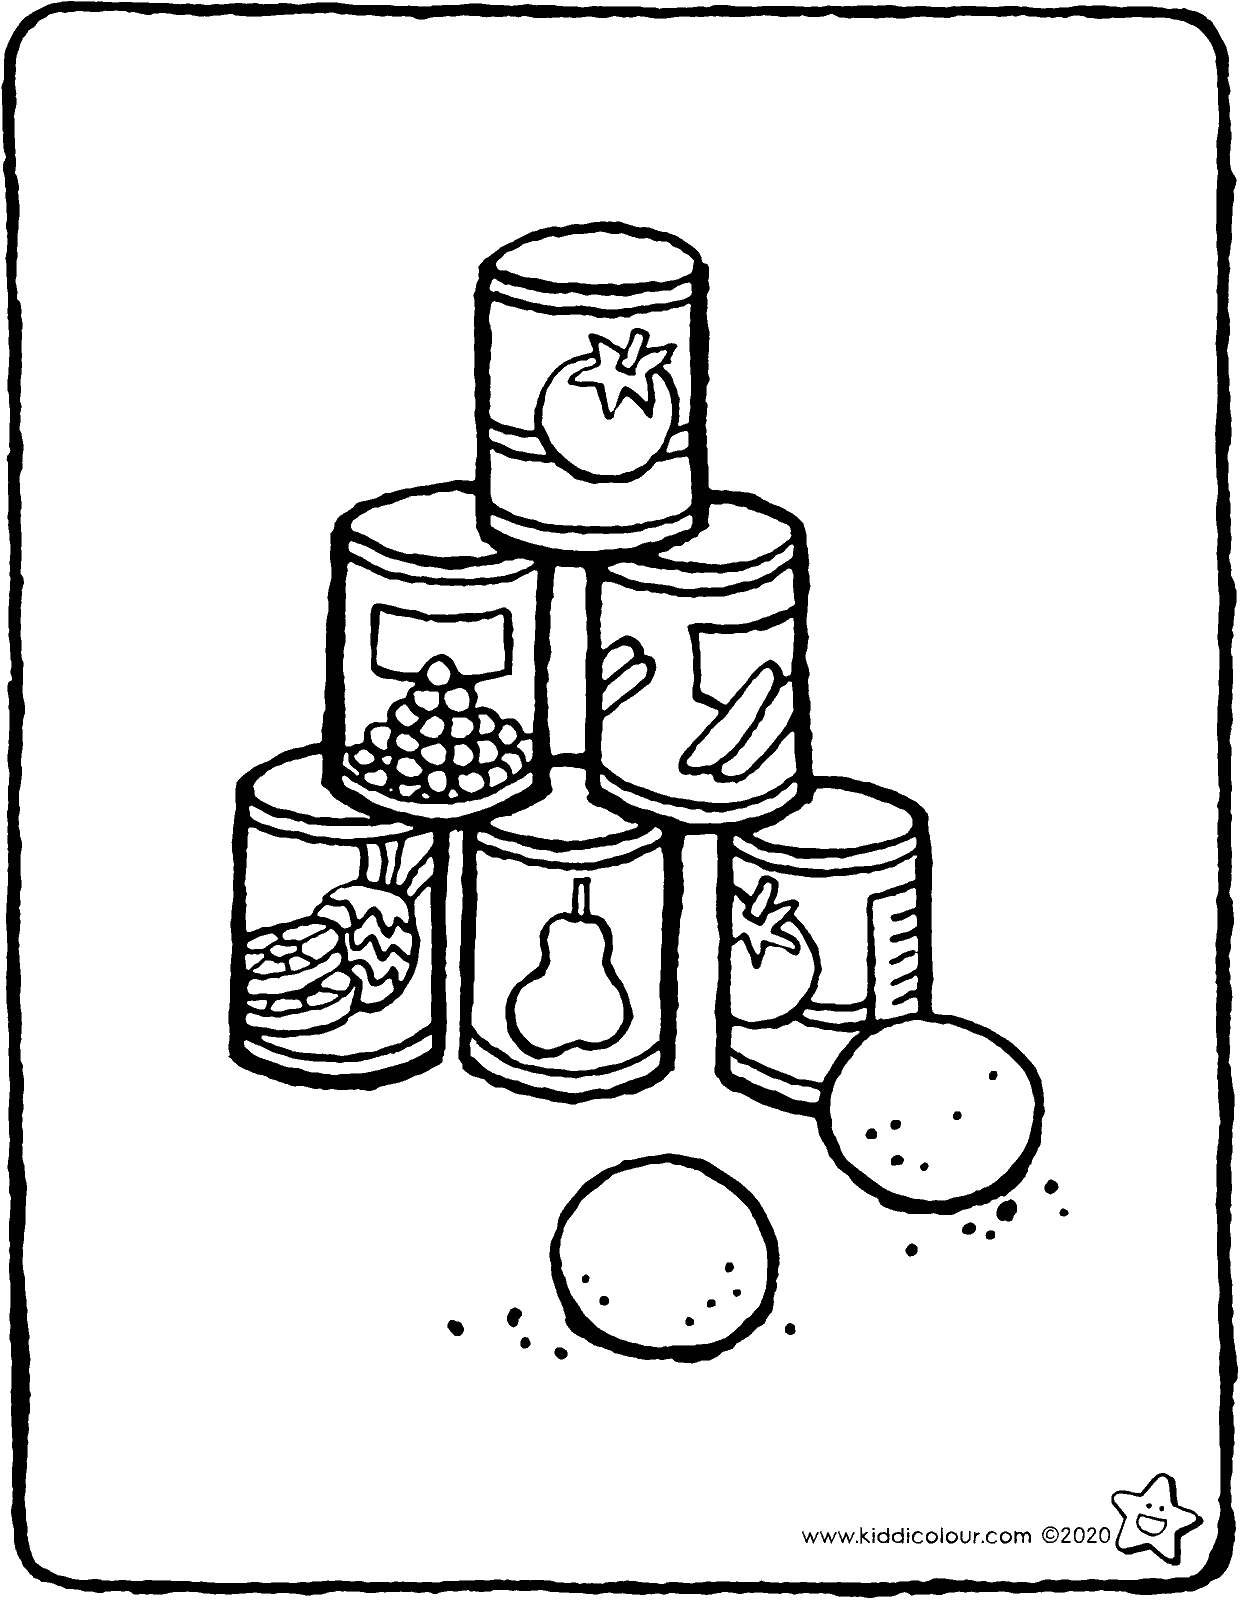 tin can alley throwing game colouring page drawing colouring picture 01V